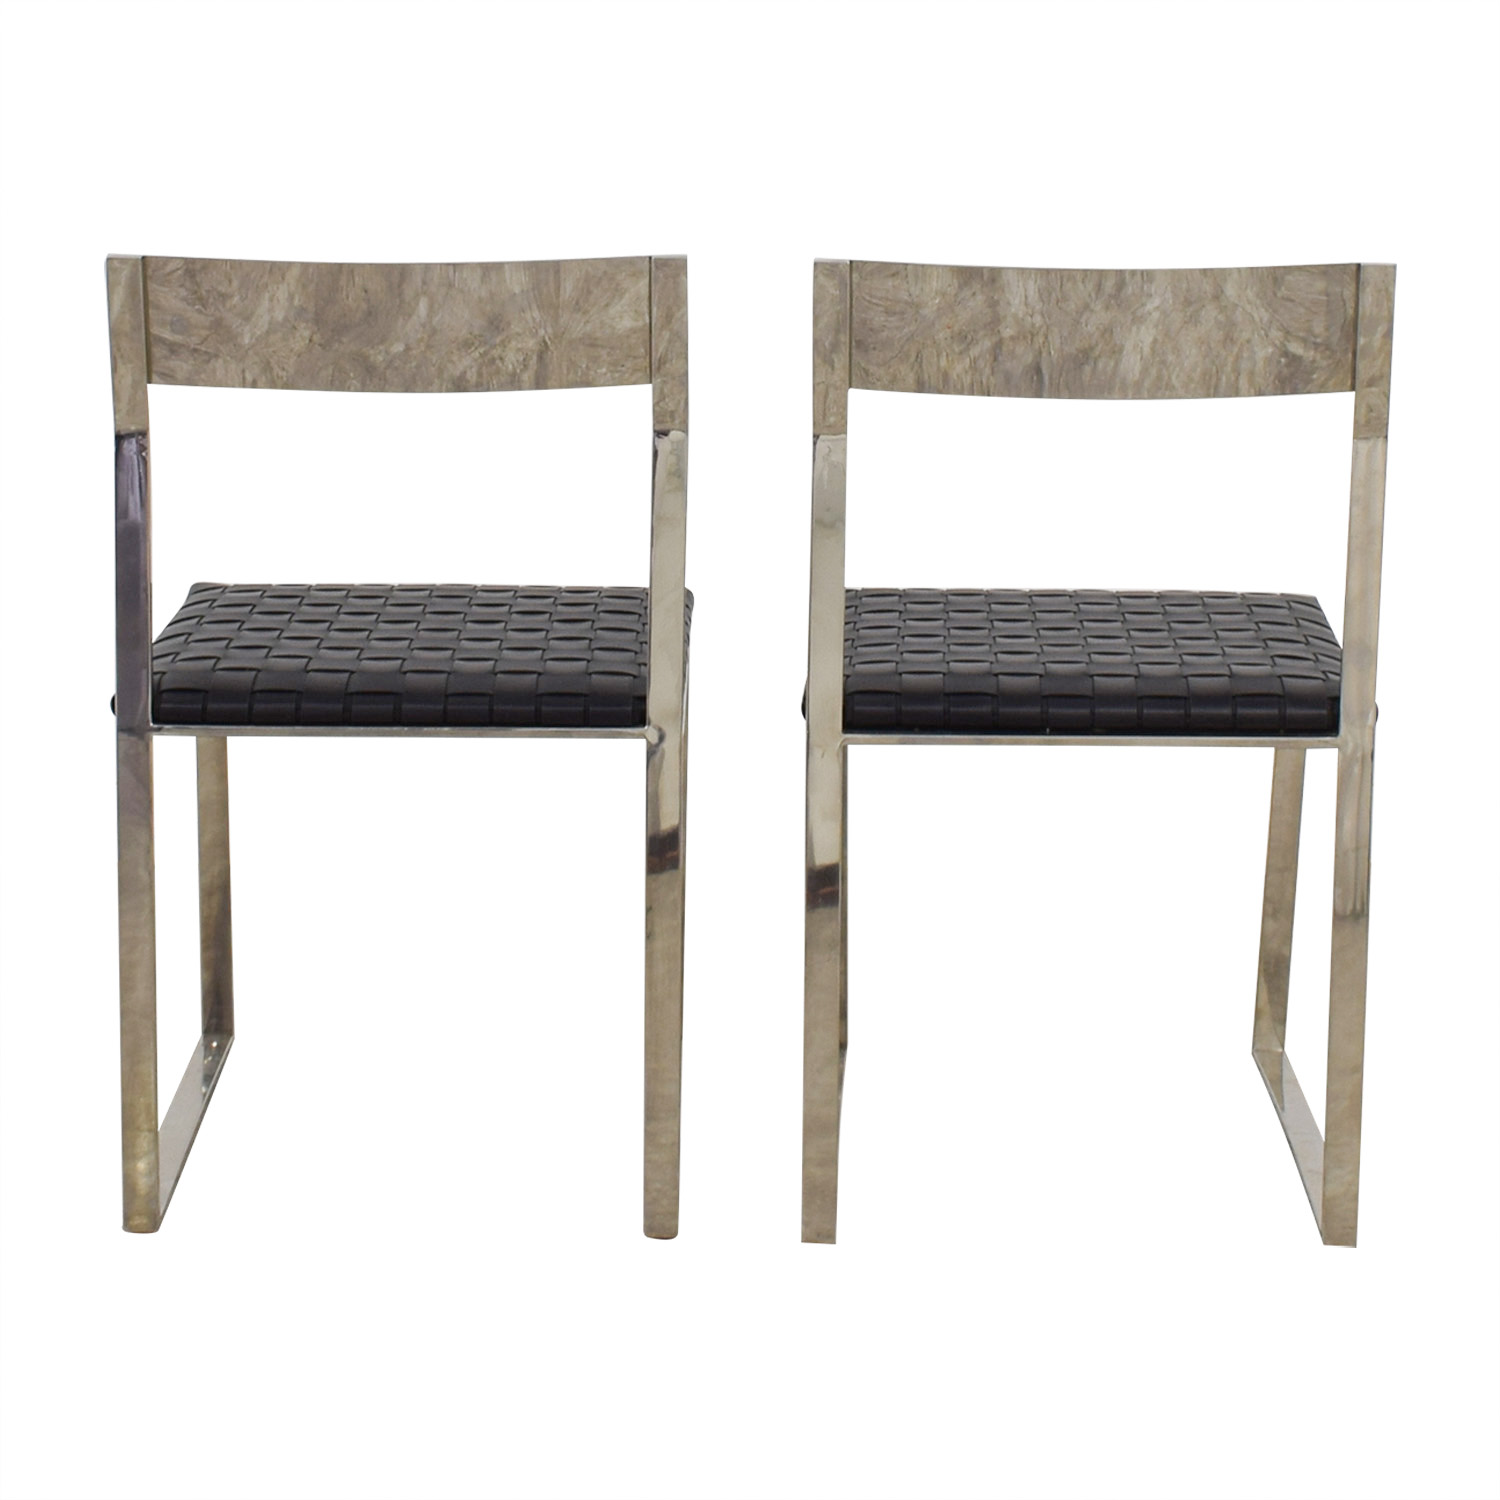 Nuevo Nuevo Camille Black Leather and Mirrored Steel Dining Chairs price